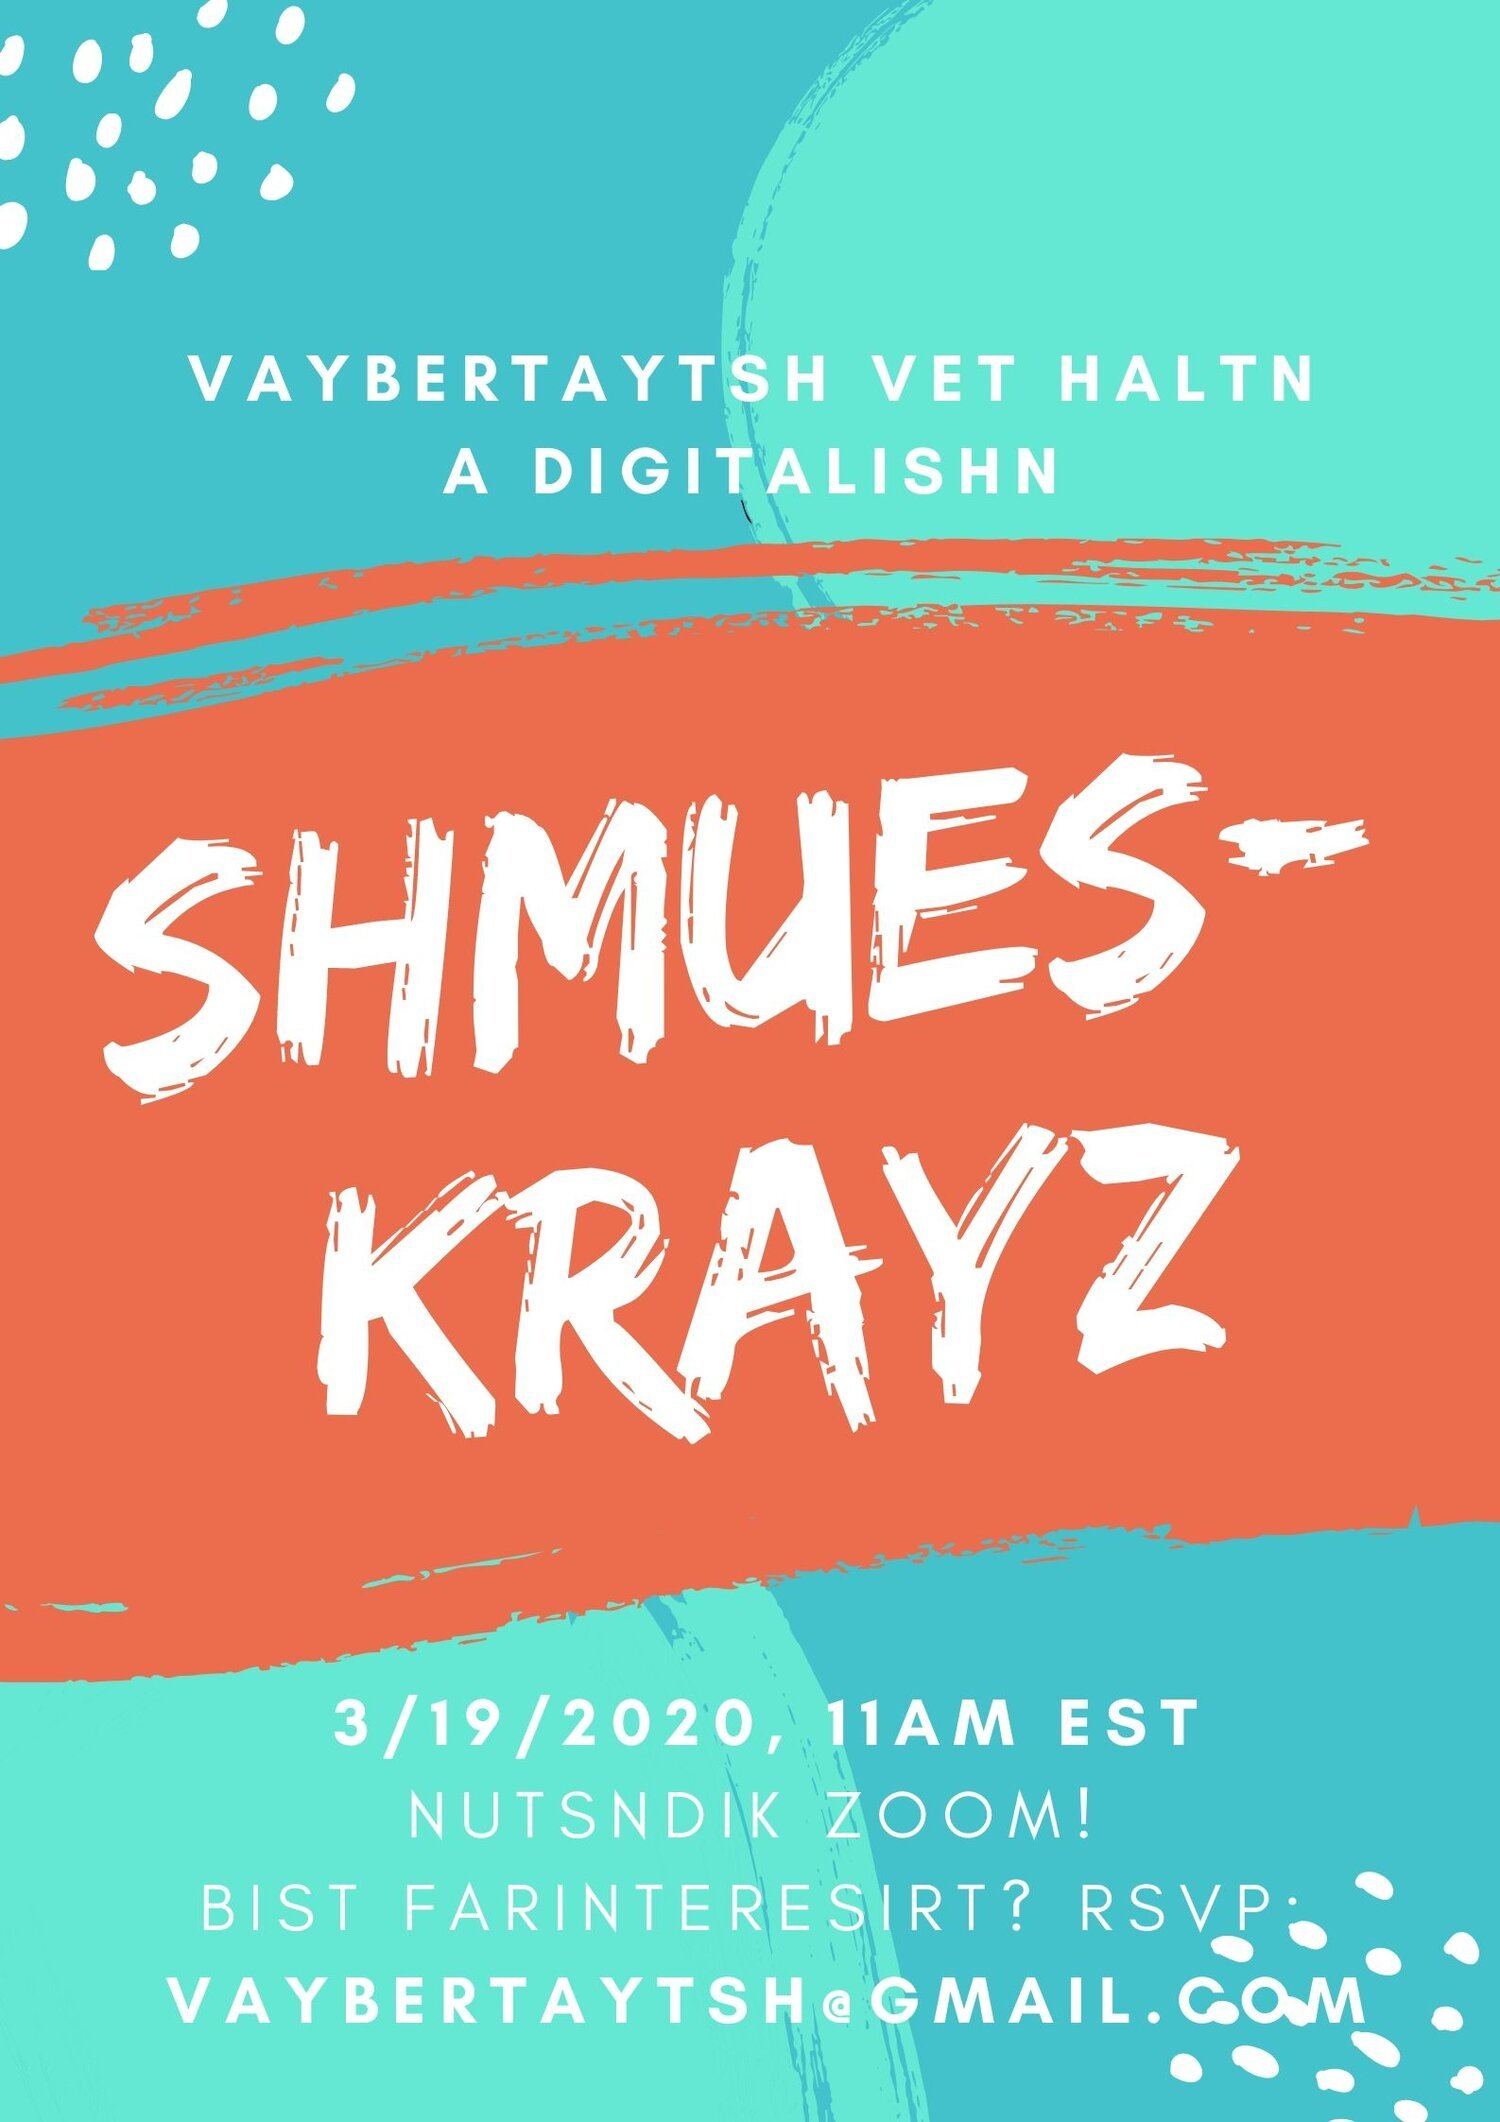 "<p>Dig­i­tal poster for Vay­ber­tayt­sh's first online <em>shmueskrayz</em> in March&nbsp;<span class=""numbers"">2020</span>.</p>"